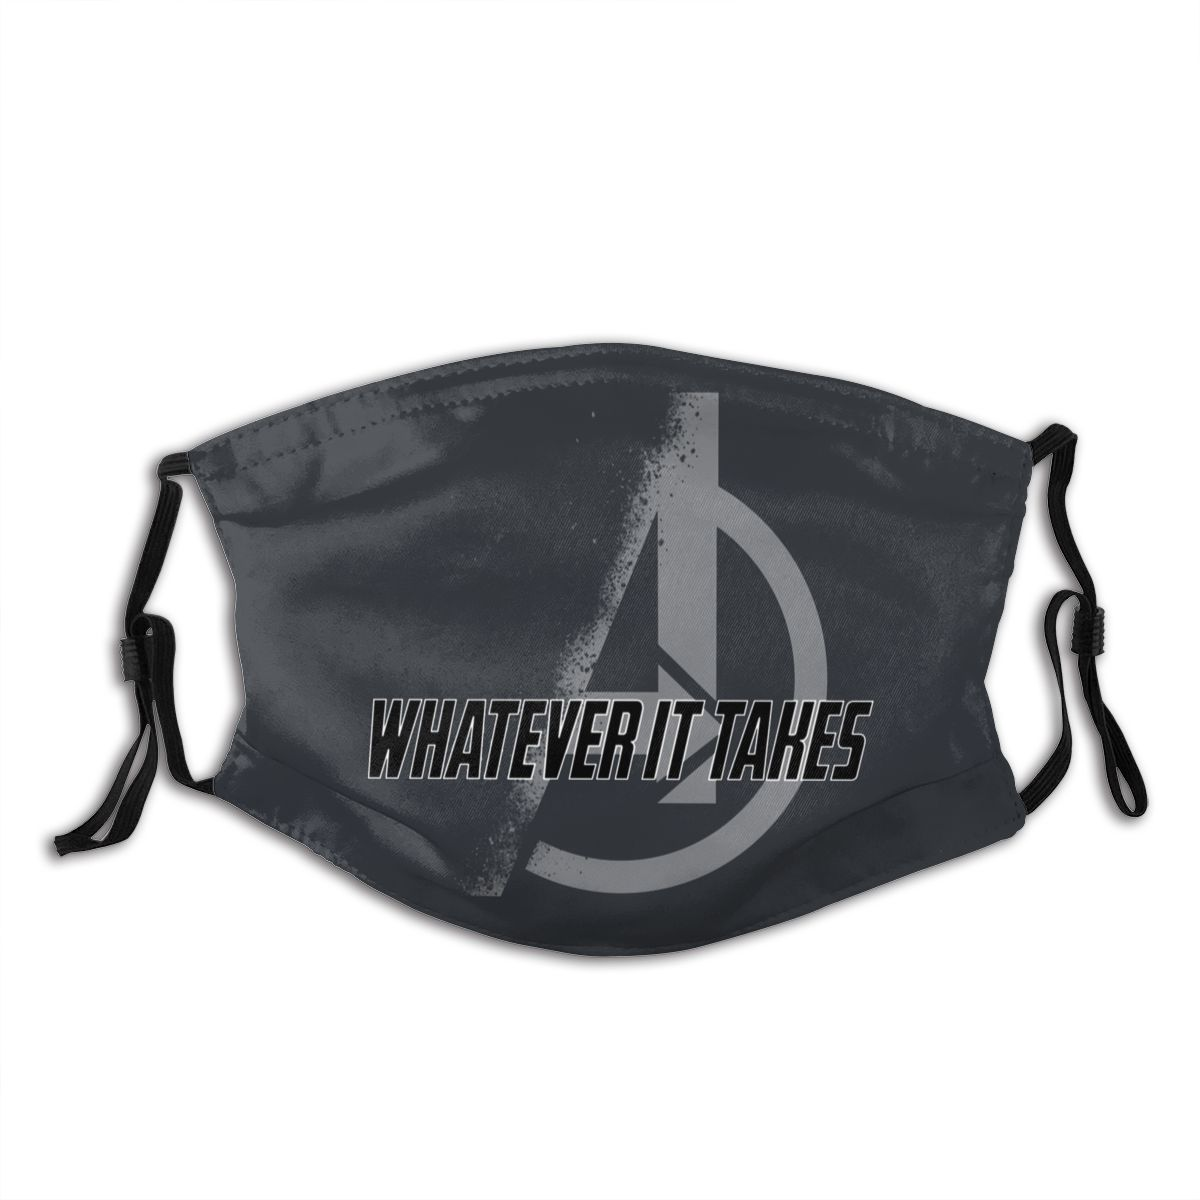 Whatever It Takes Avengers Unisex Reusable Face Mask With Filter Anti Bacterial Dustproof Mask Respirator Mouth Muffle